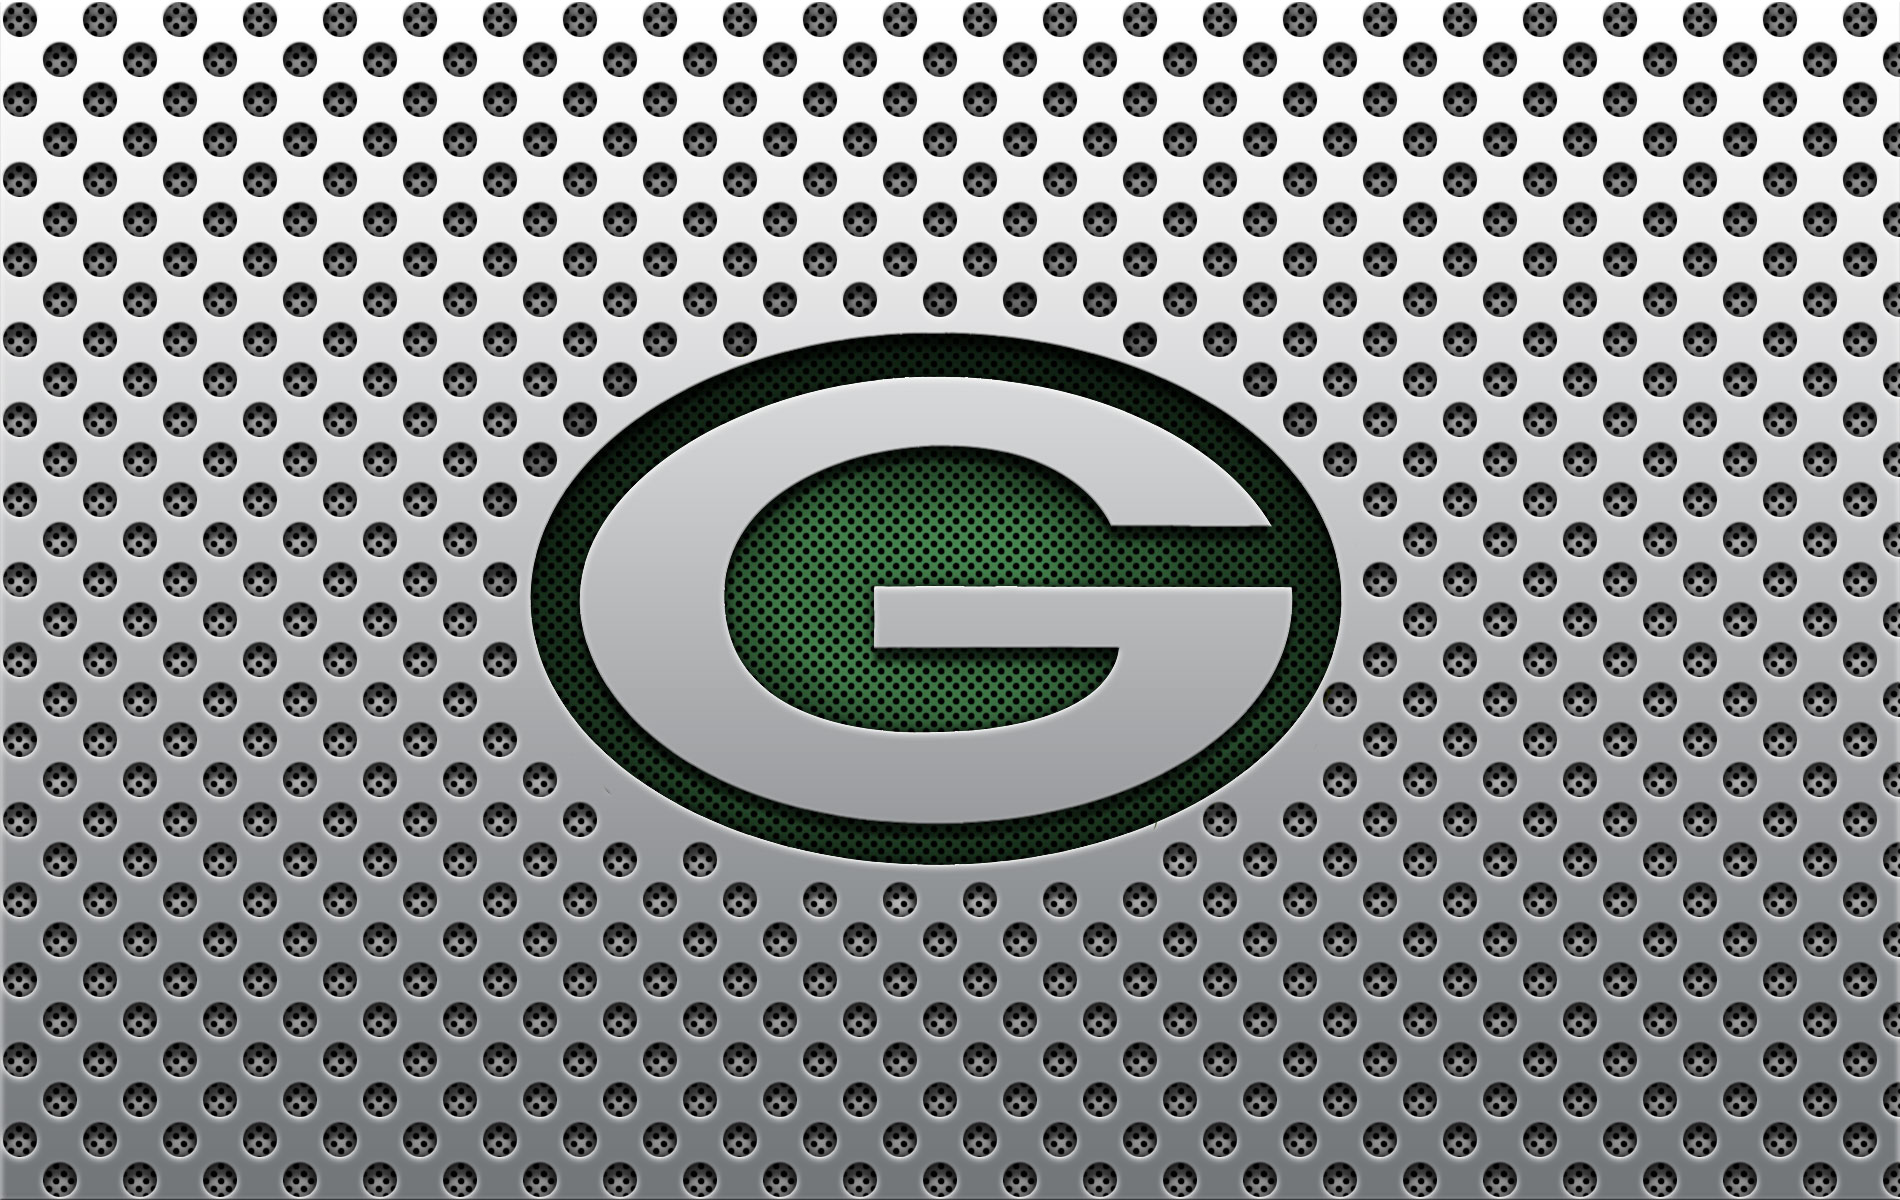 Green Bay Packers Logo Wallpaper 365 Days of Design 1900x1200